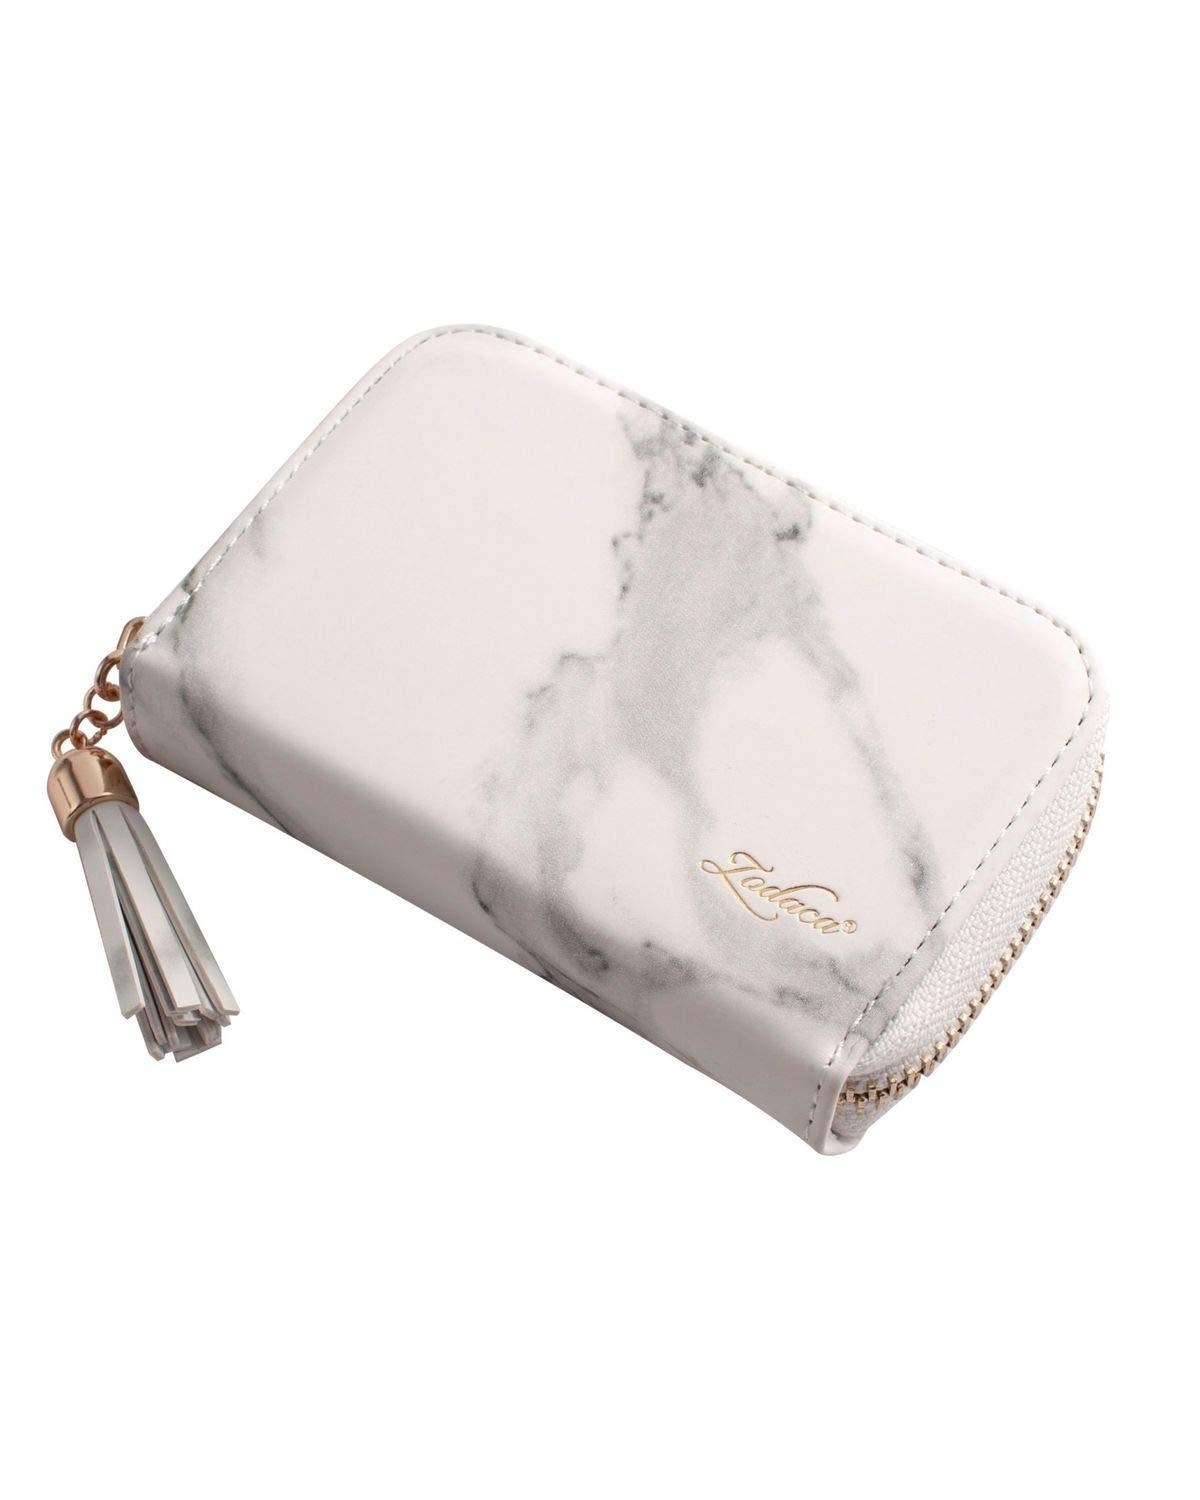 Zodaca Zipper Credit Card Holder Lightweight Accordion Wallet Slim Card Case for Women/Men, 10 Card Slots for ID Card, Business Cards, Bank Notes, White Marble 2440192